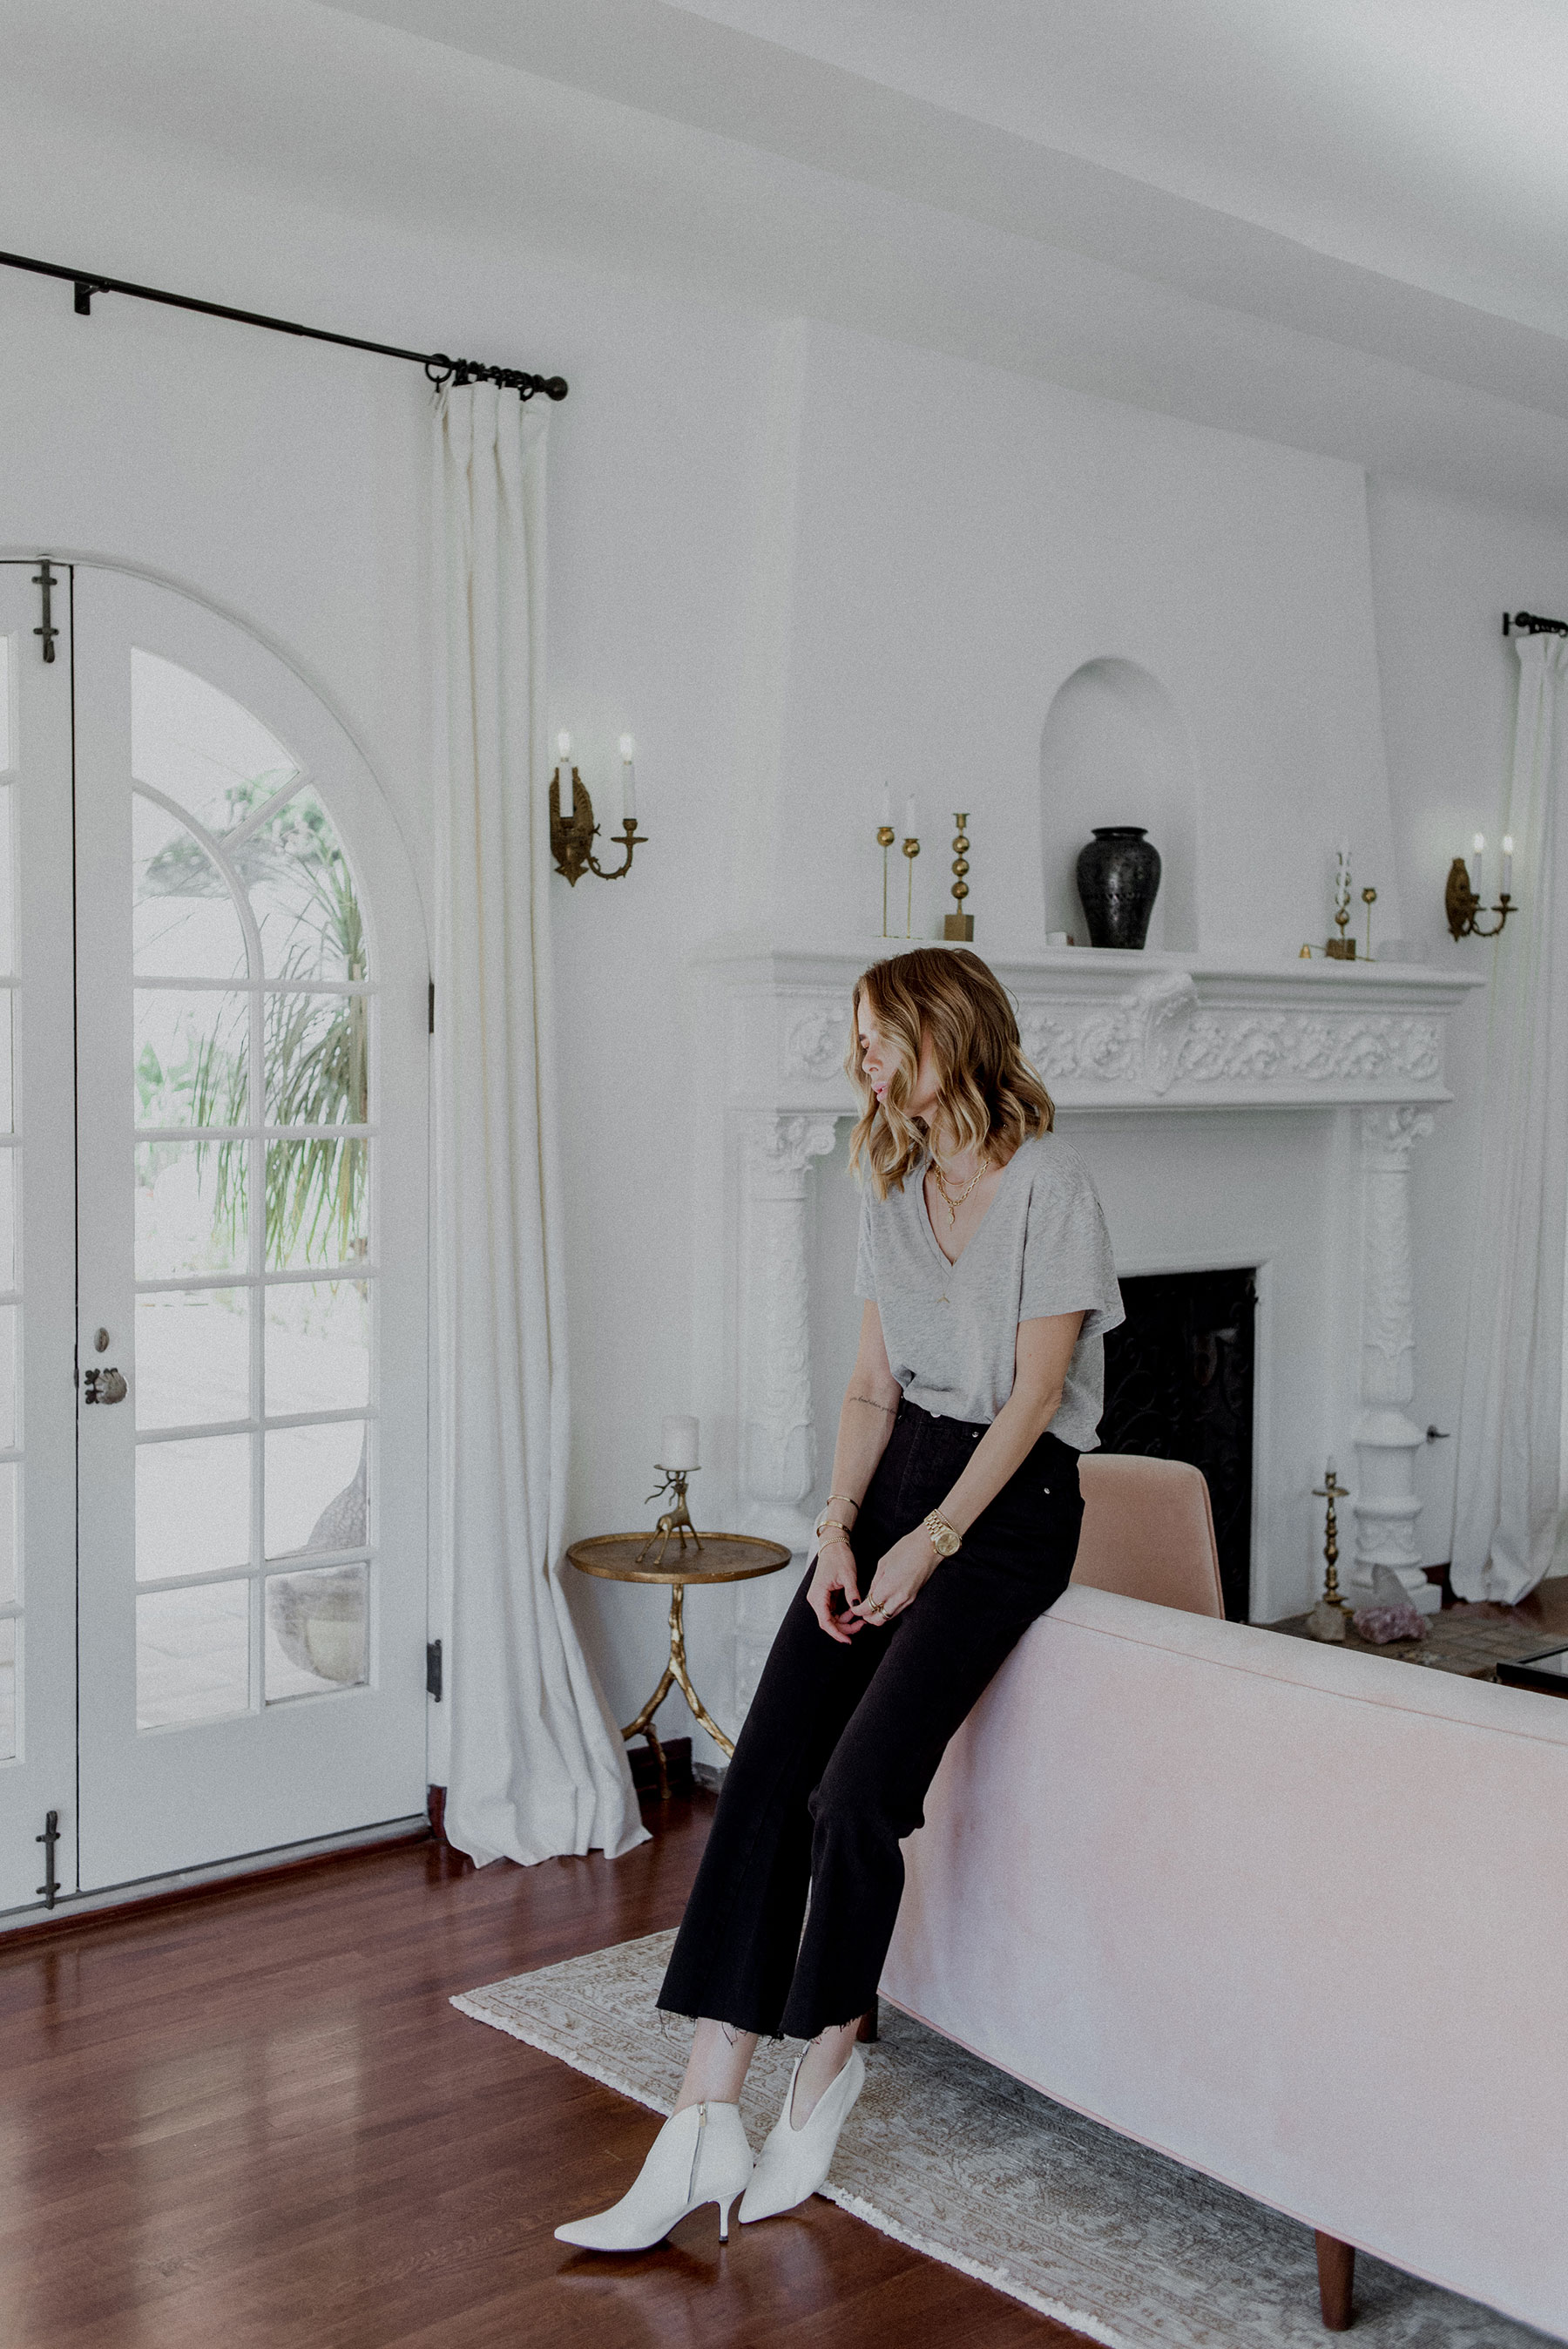 At Home With Anine Bing